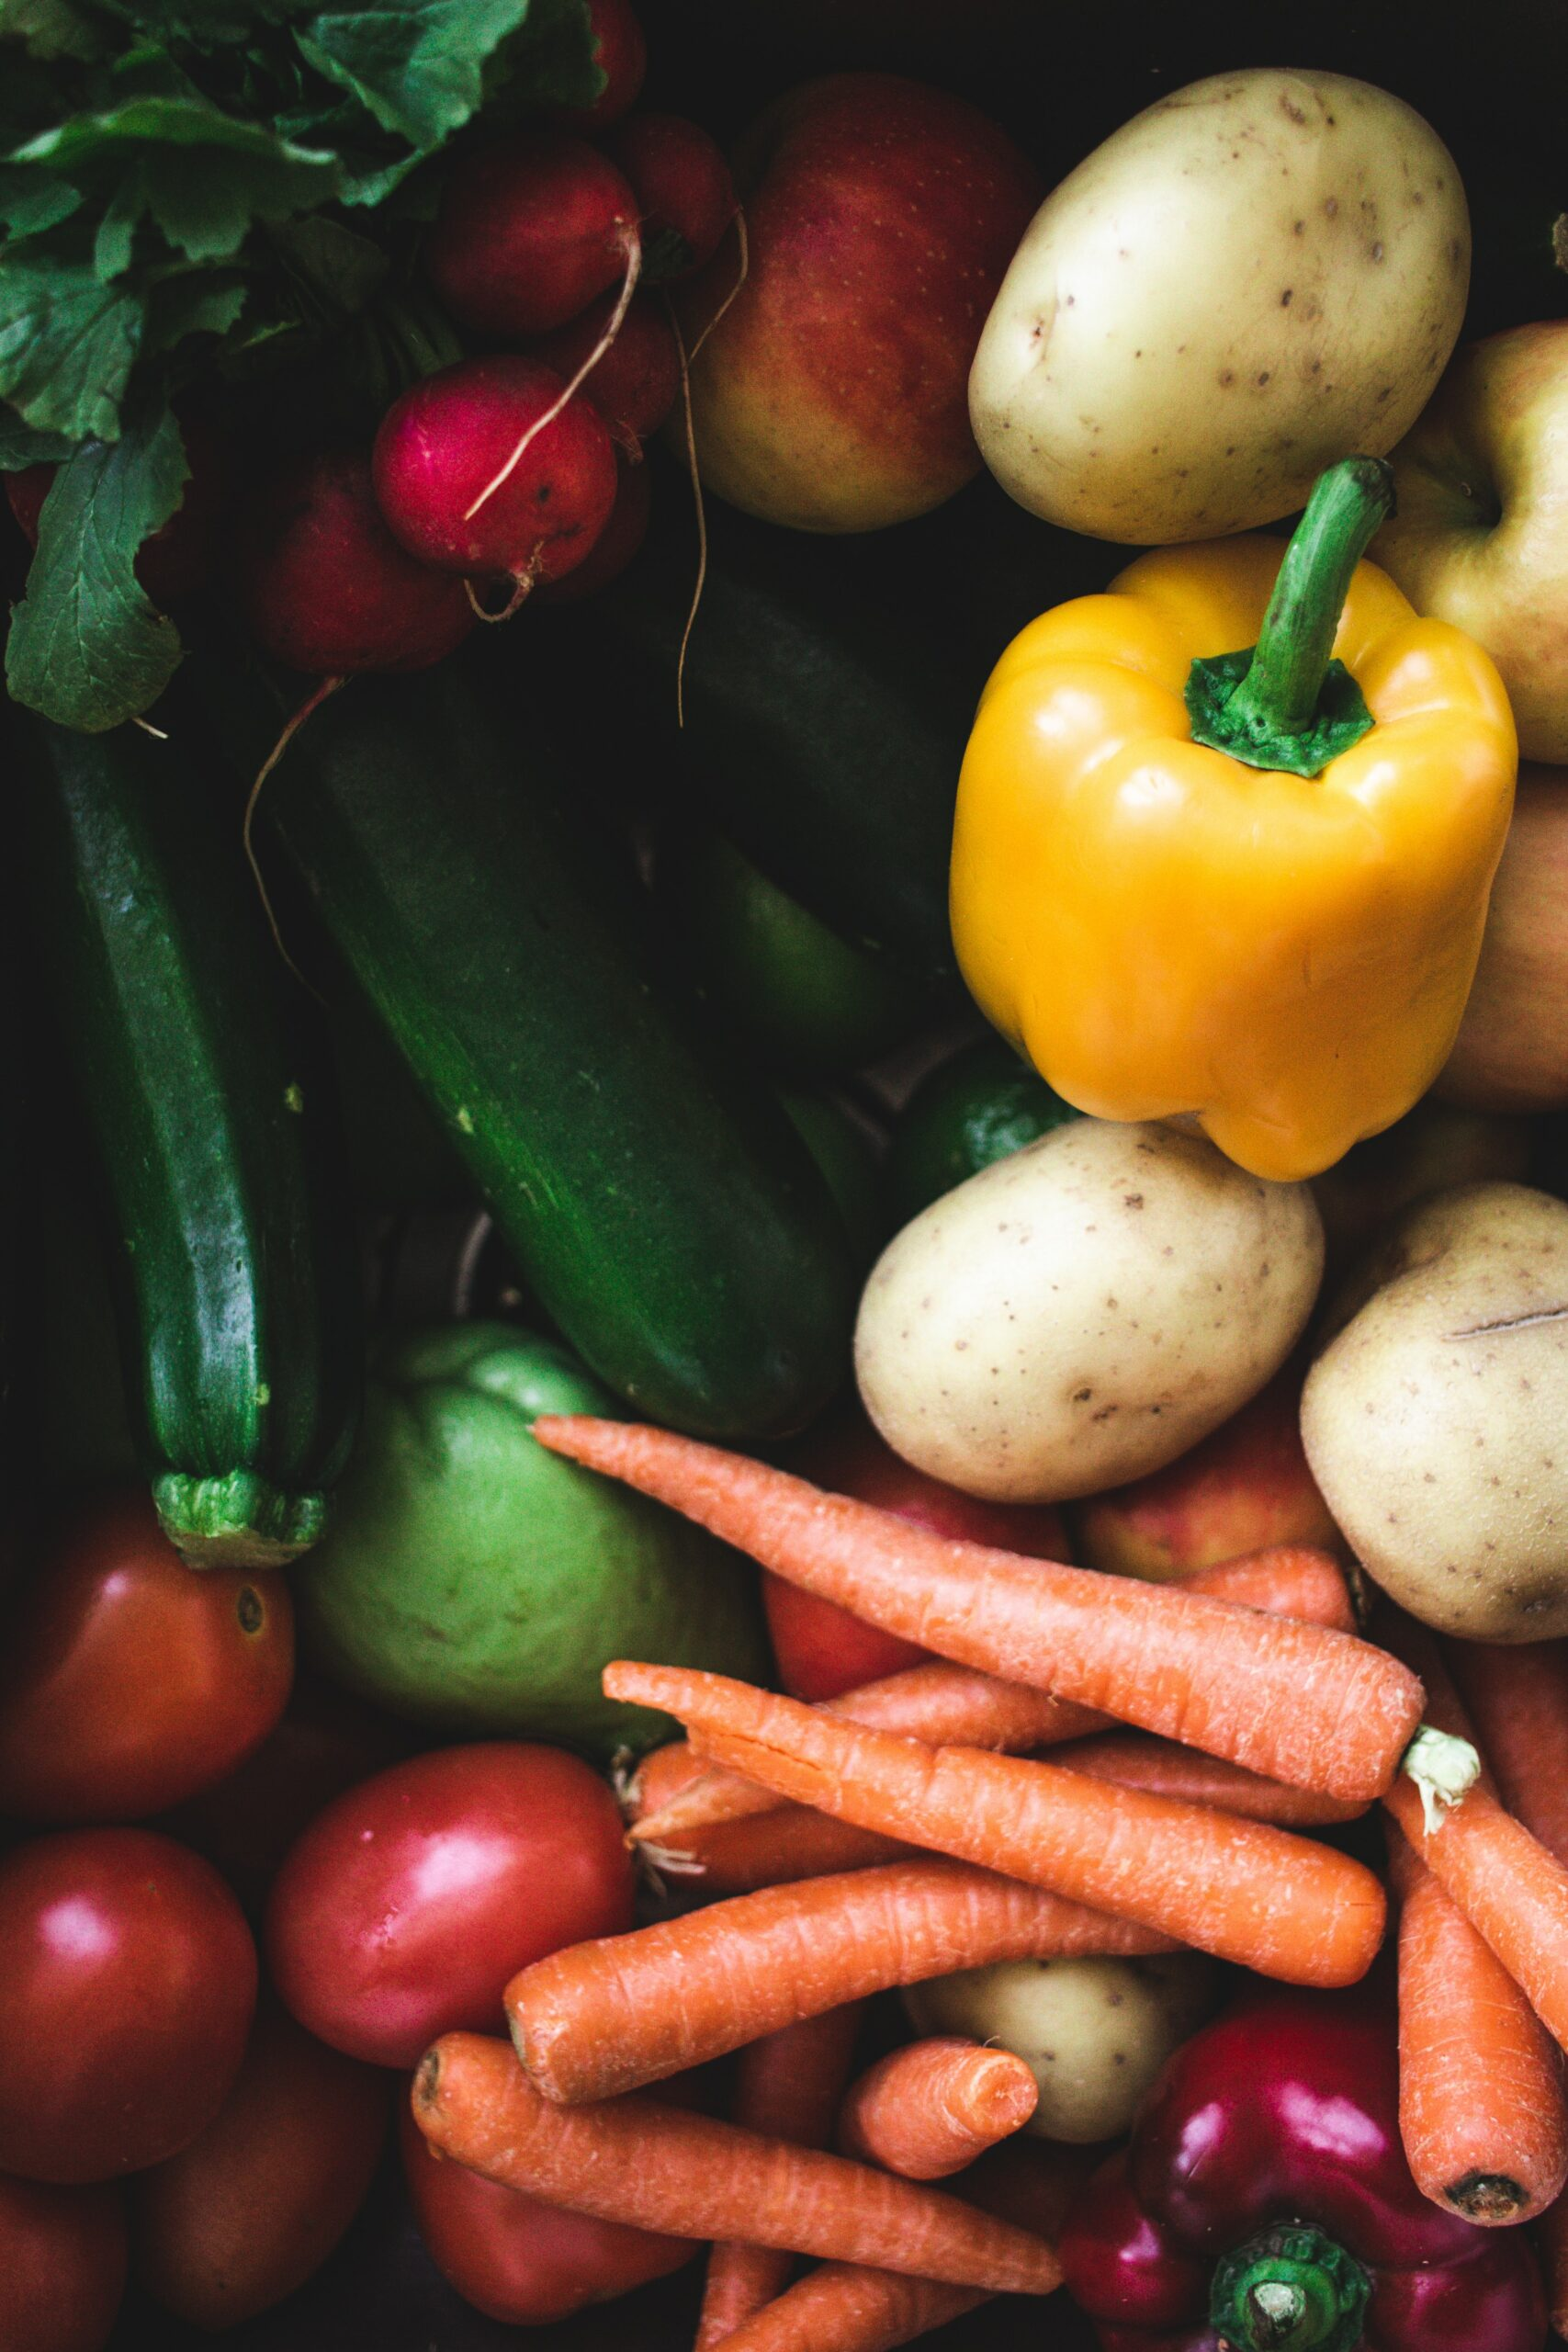 5 Tips to Improve Your Social Wellness by Supporting Your Local Farmers